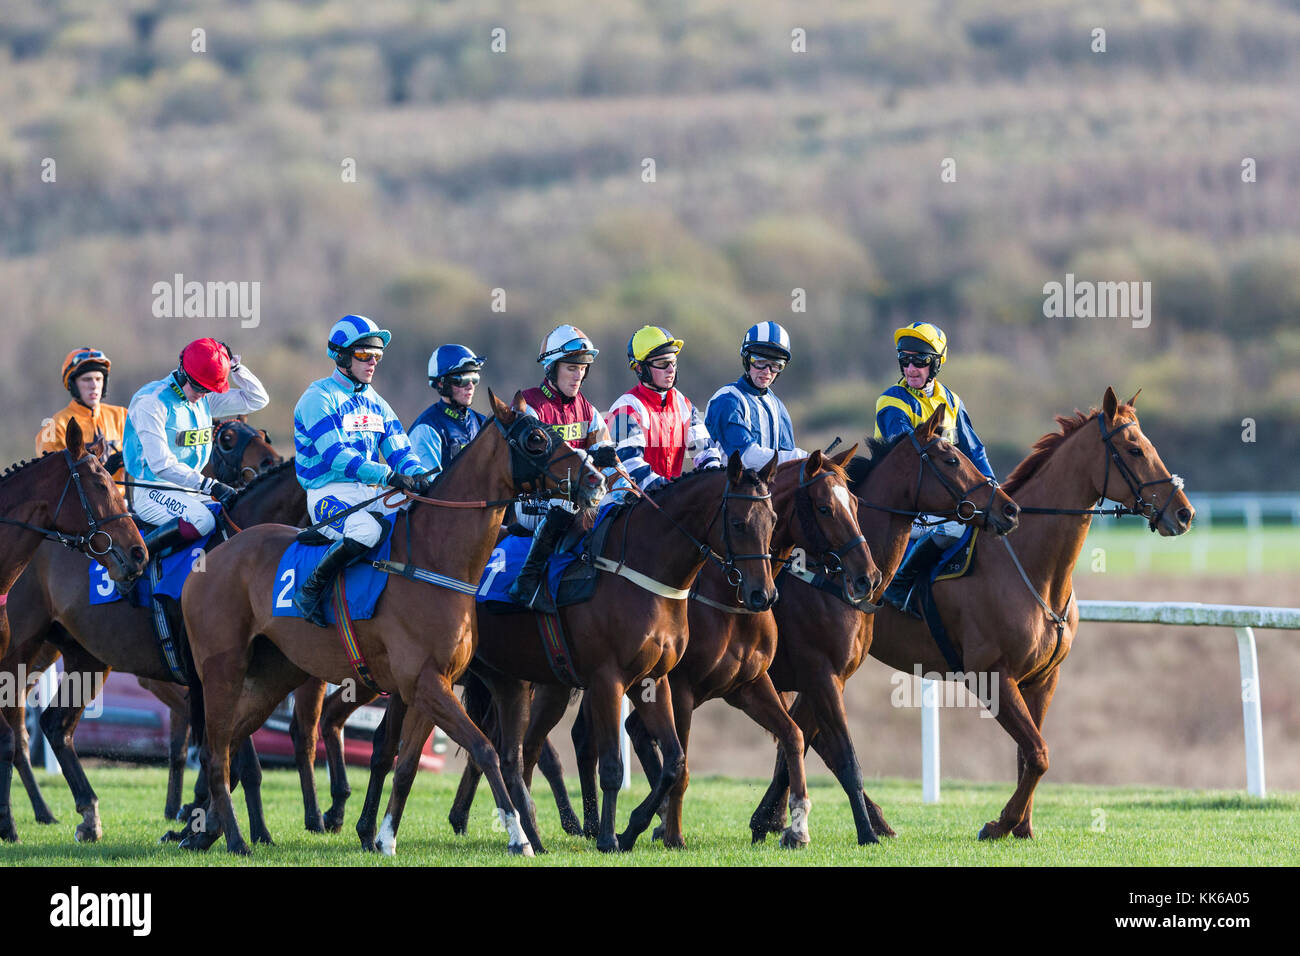 Racehorses and jockeys at Ffos Las before a race - Stock Image